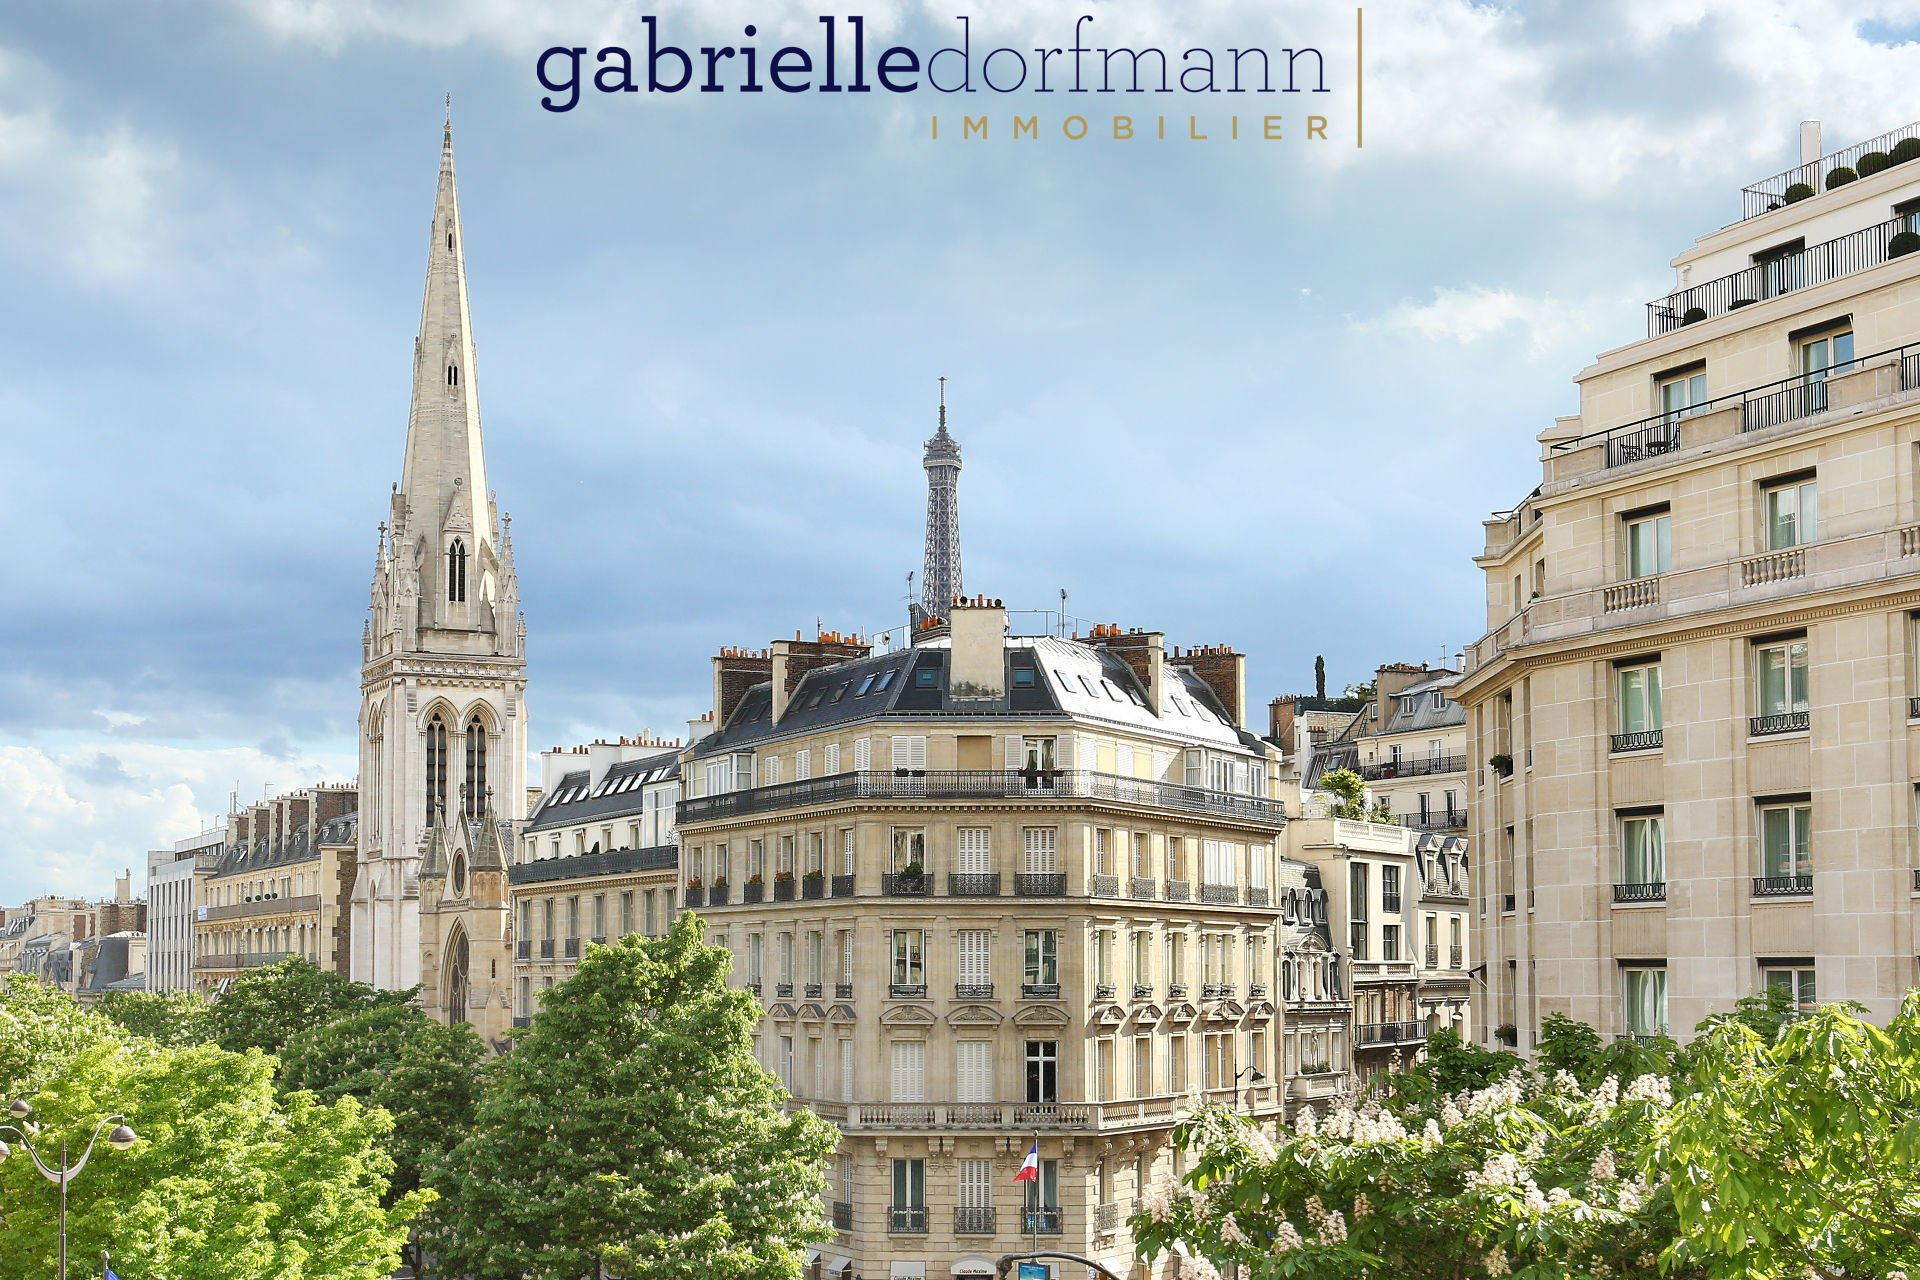 A Vendre - Appartement 80m2- Avenue George V